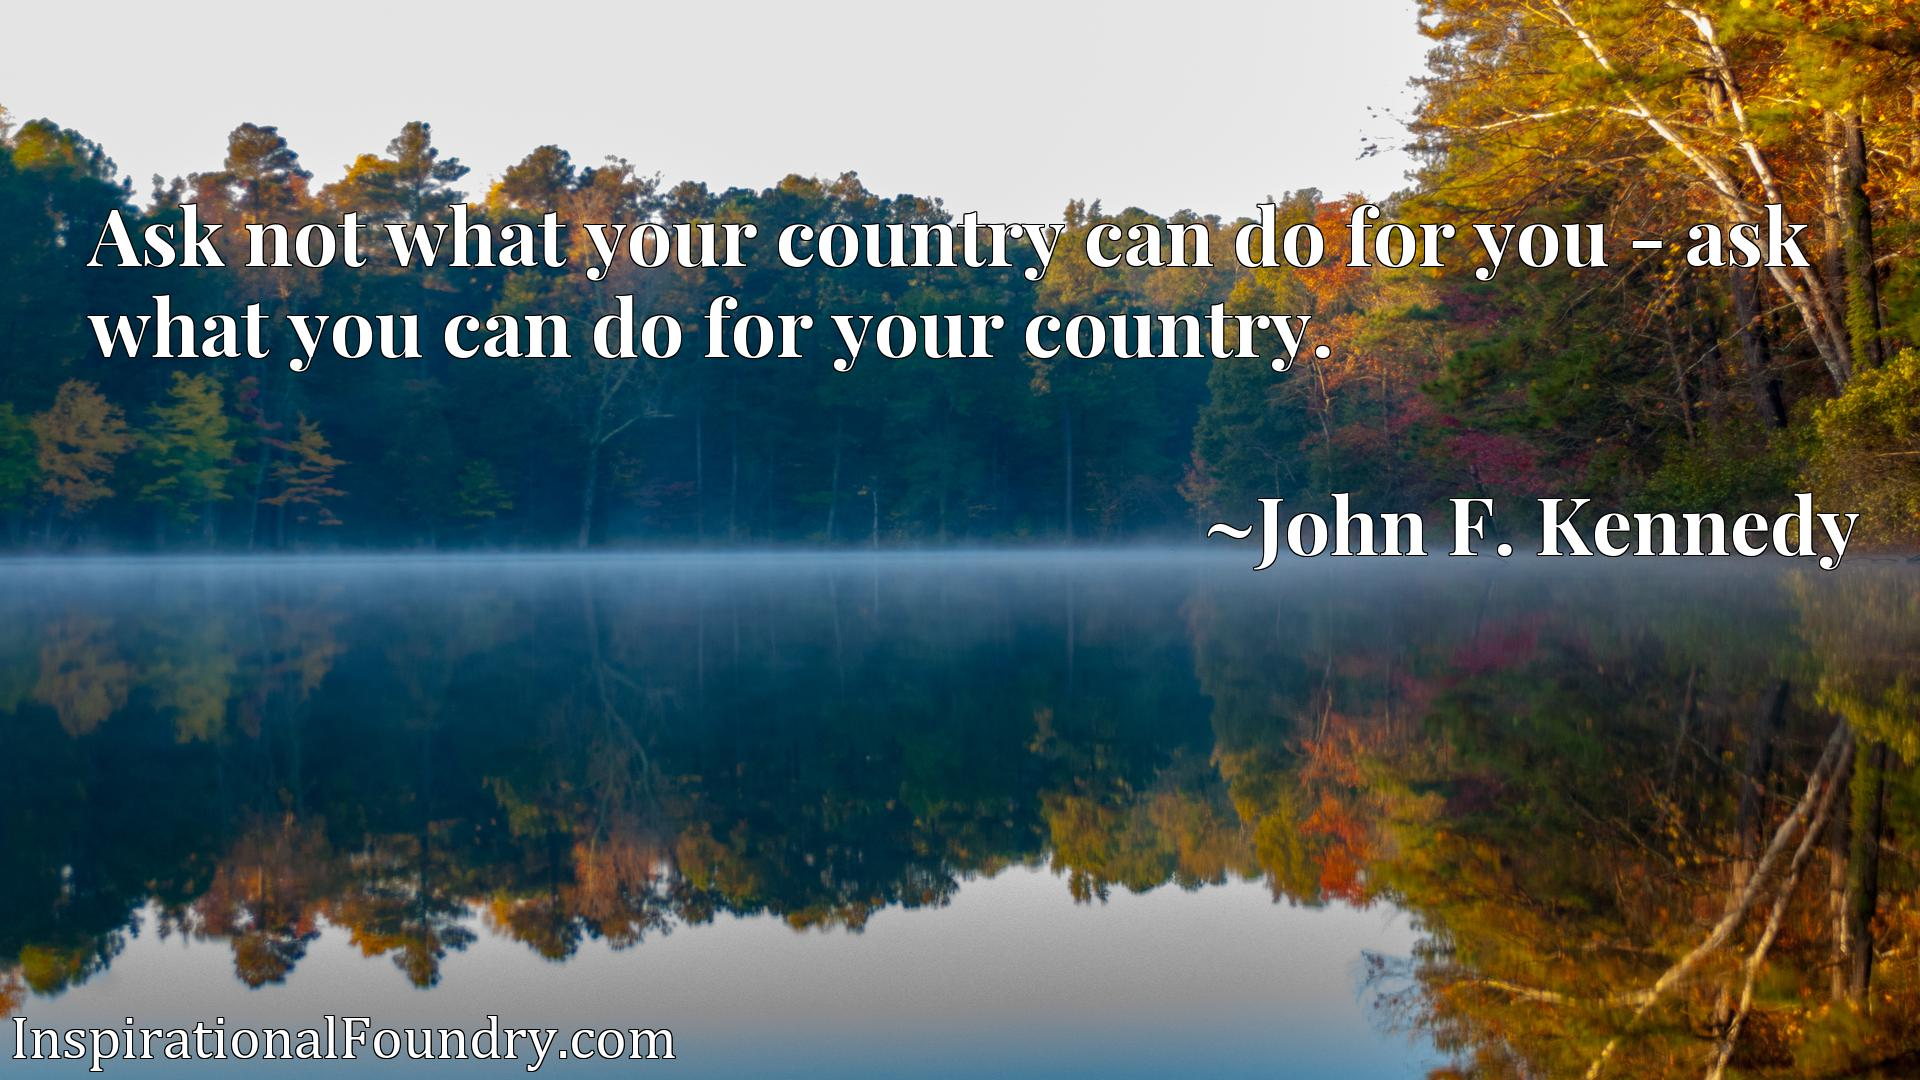 Ask not what your country can do for you - ask what you can do for your country.